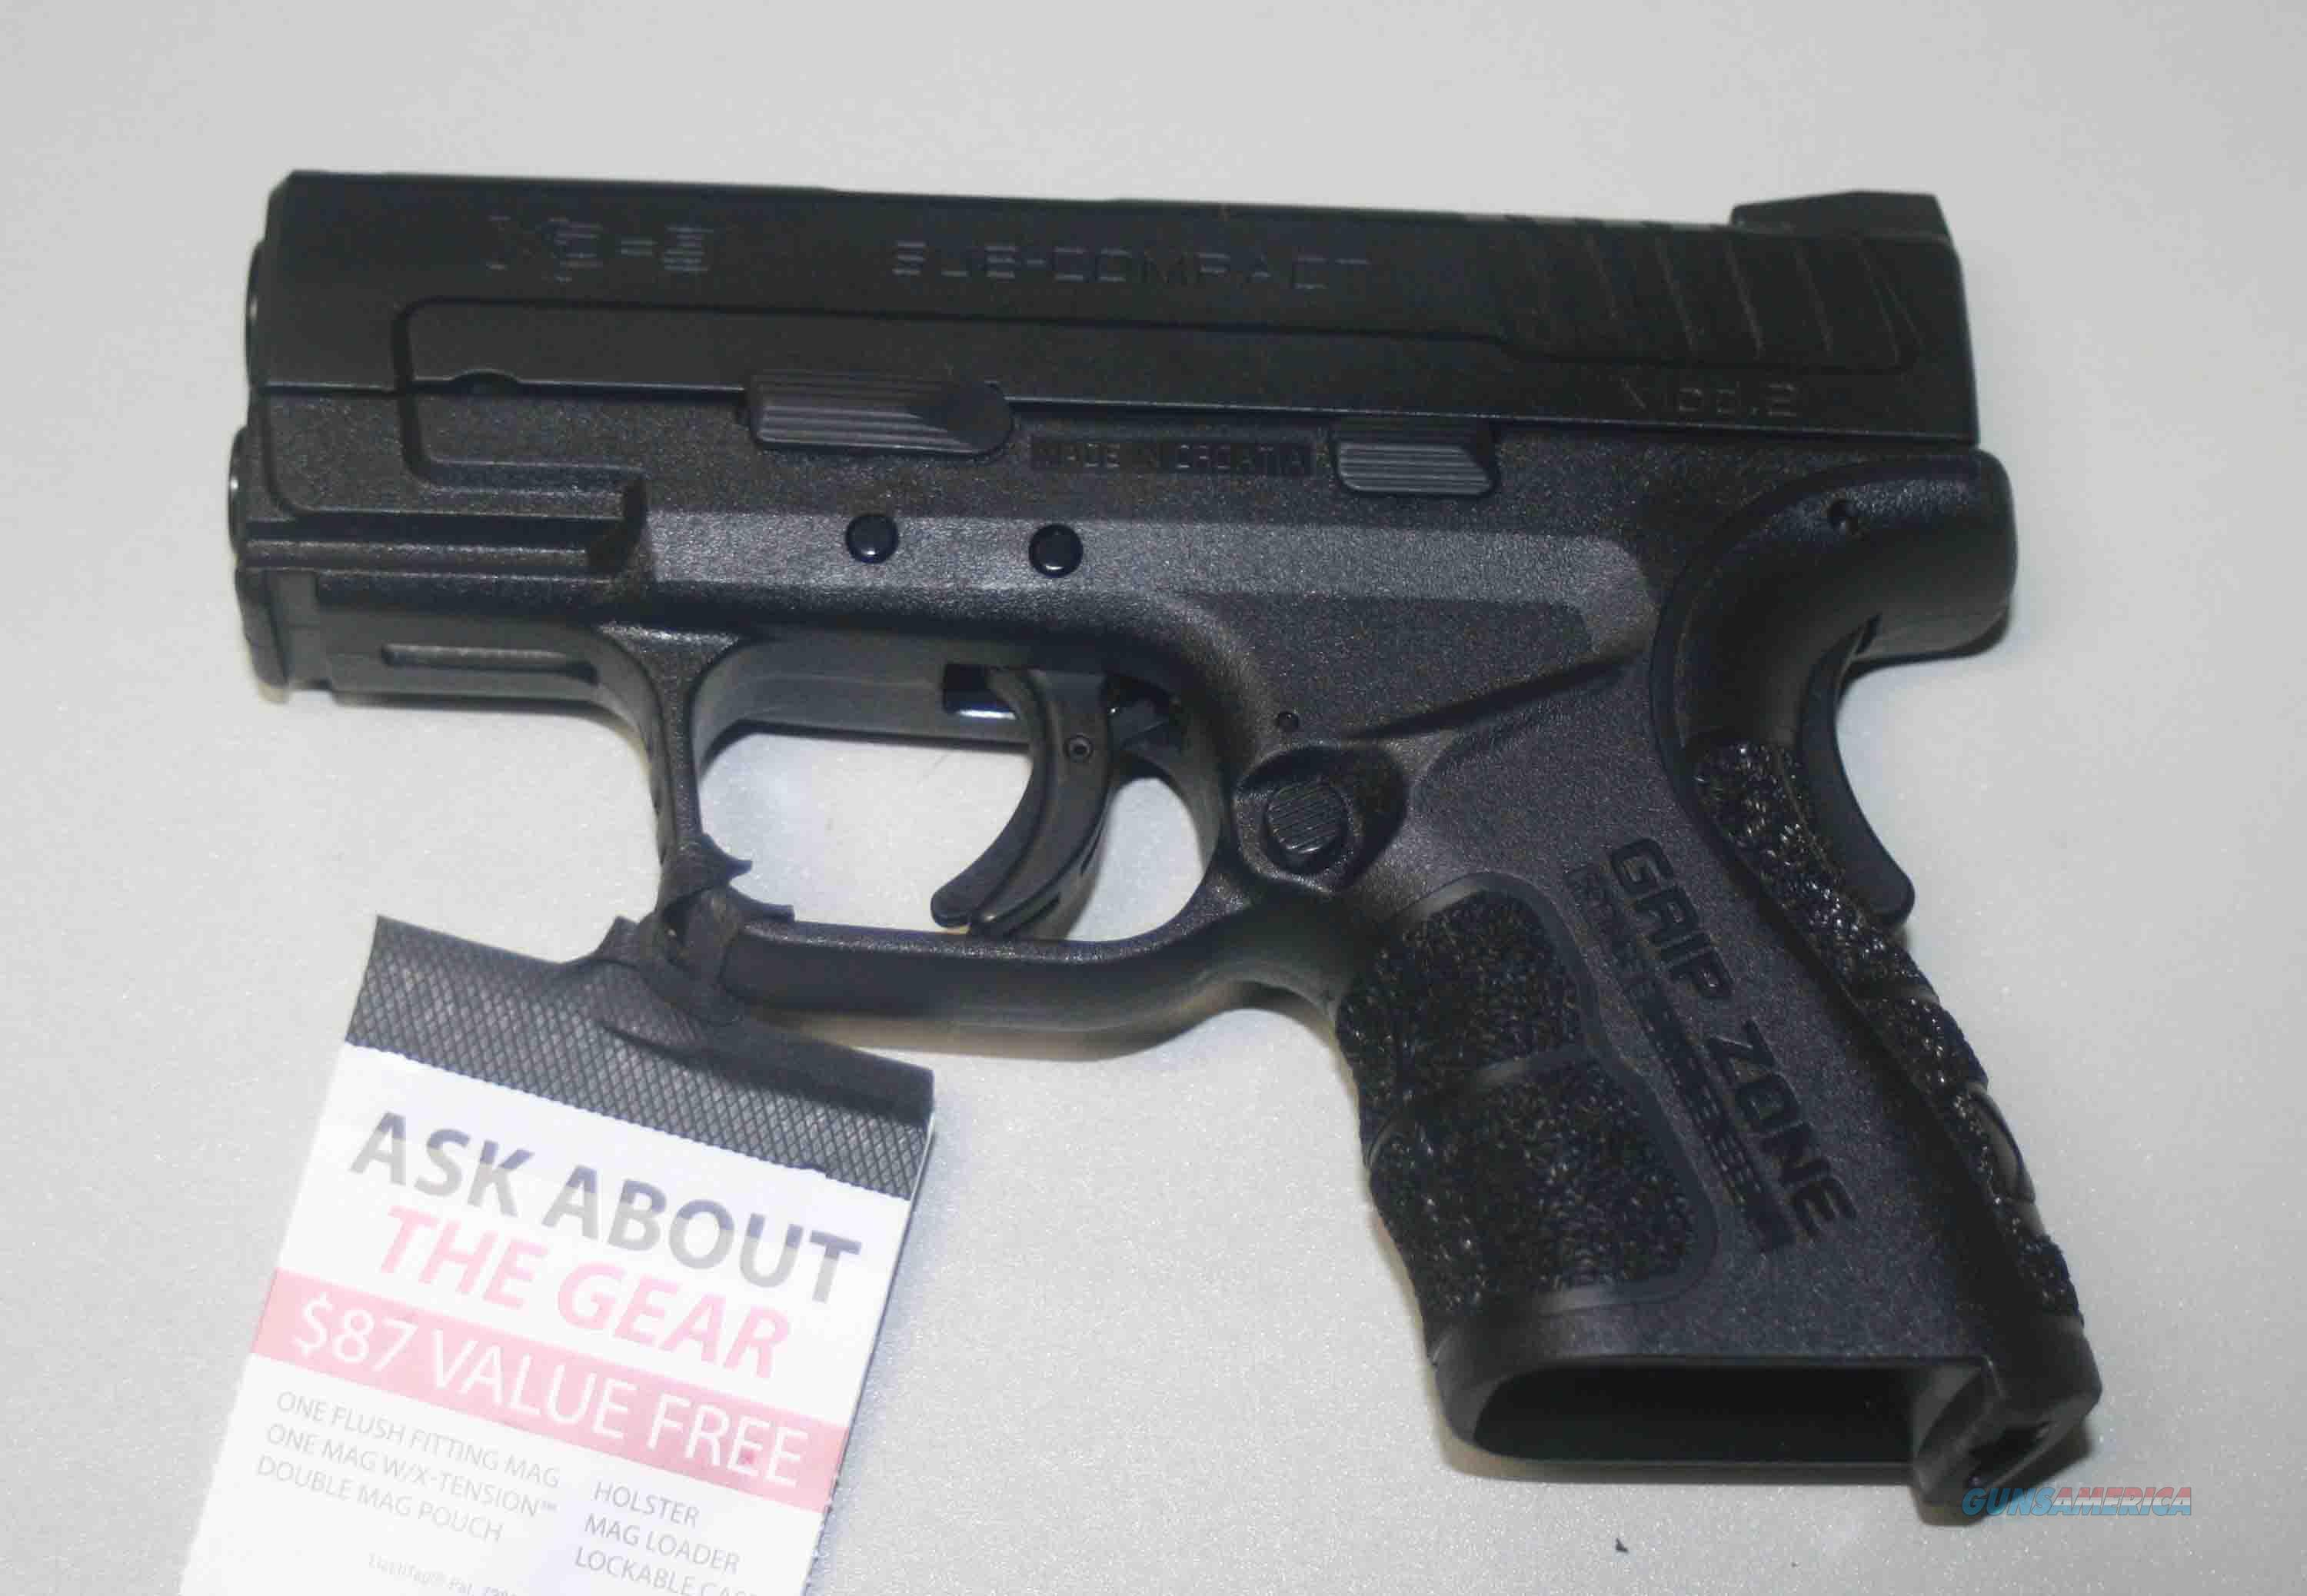 SPRINGFIELD'S NEW XD MOD.2  XDG9801HCSP NEW ARRIVAL FOR 2015  Guns > Pistols > Springfield Armory Pistols > XD (eXtreme Duty)